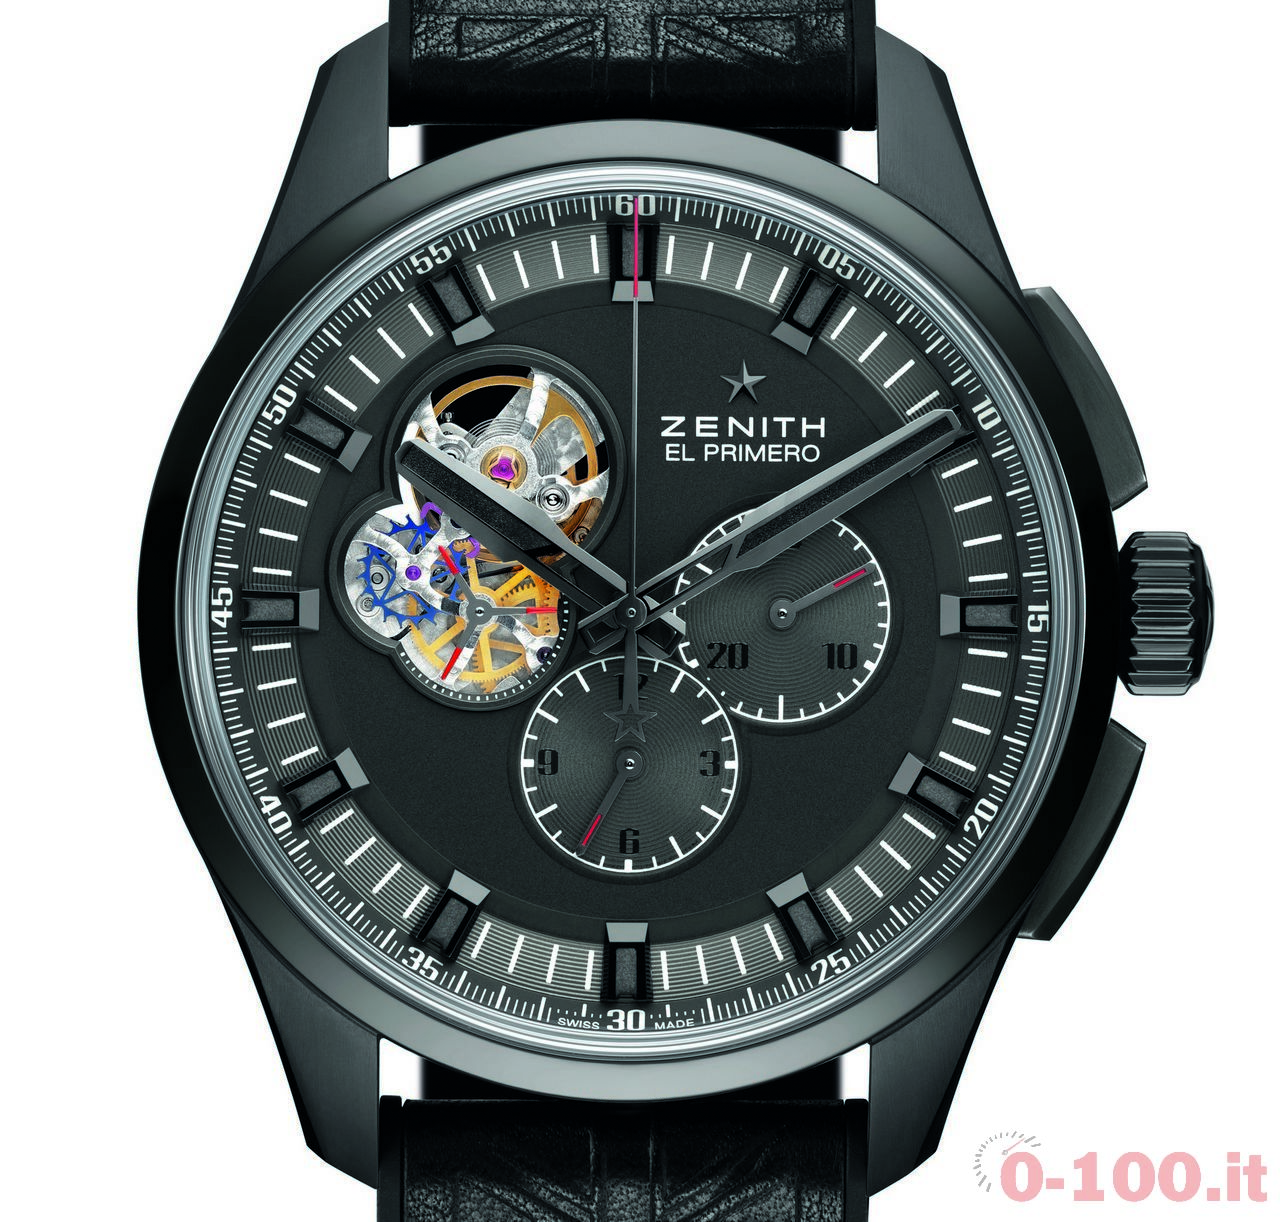 zenith-el-primero-chronomaster-1969-tribute-to-the-rolling-stones-limited-edition_0-1002